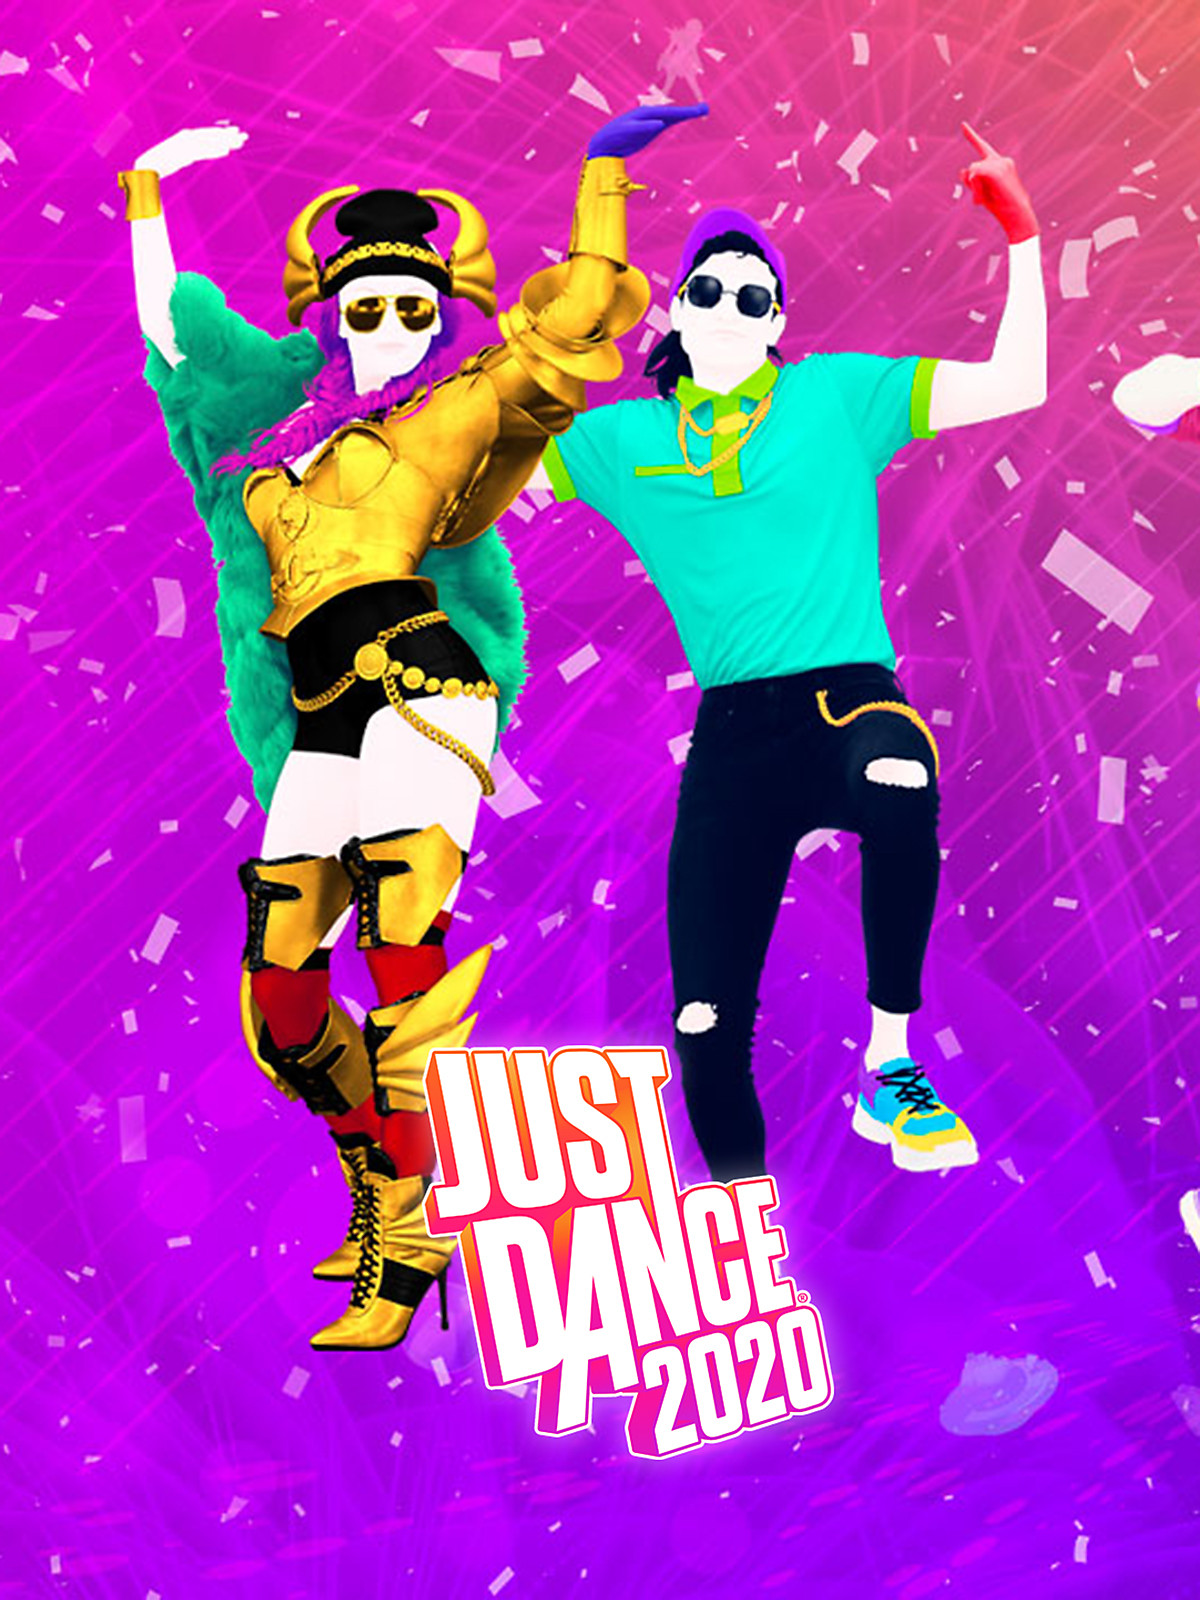 Just Dance 2020 Game PS4   PlayStation 1200x1600